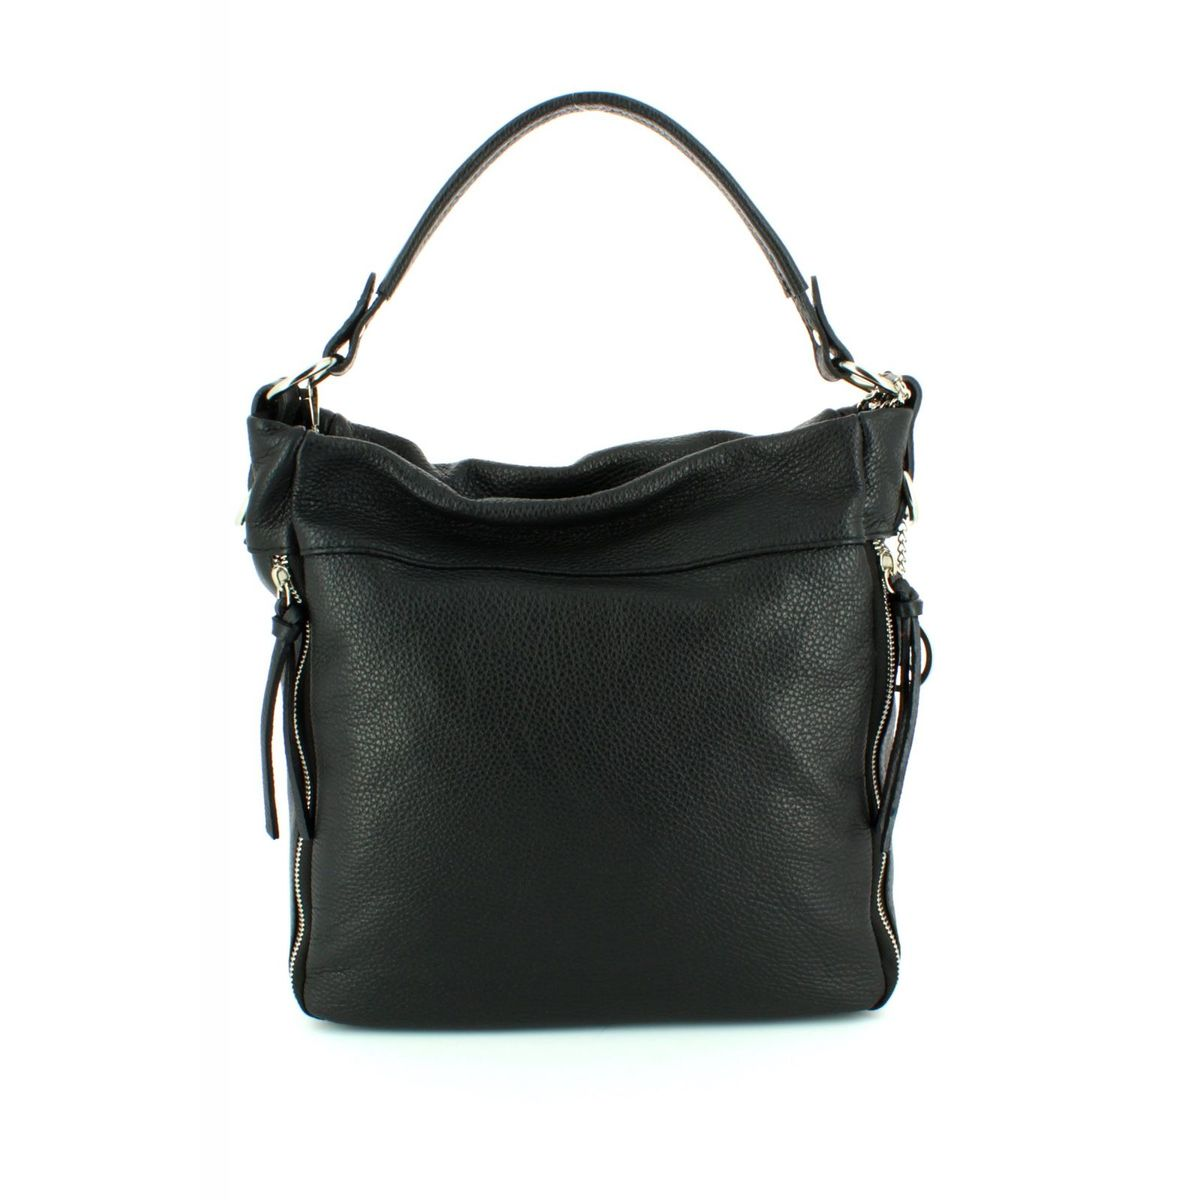 Gianni Conti Handbag Black 0136721 10 Slouchy Alex Co